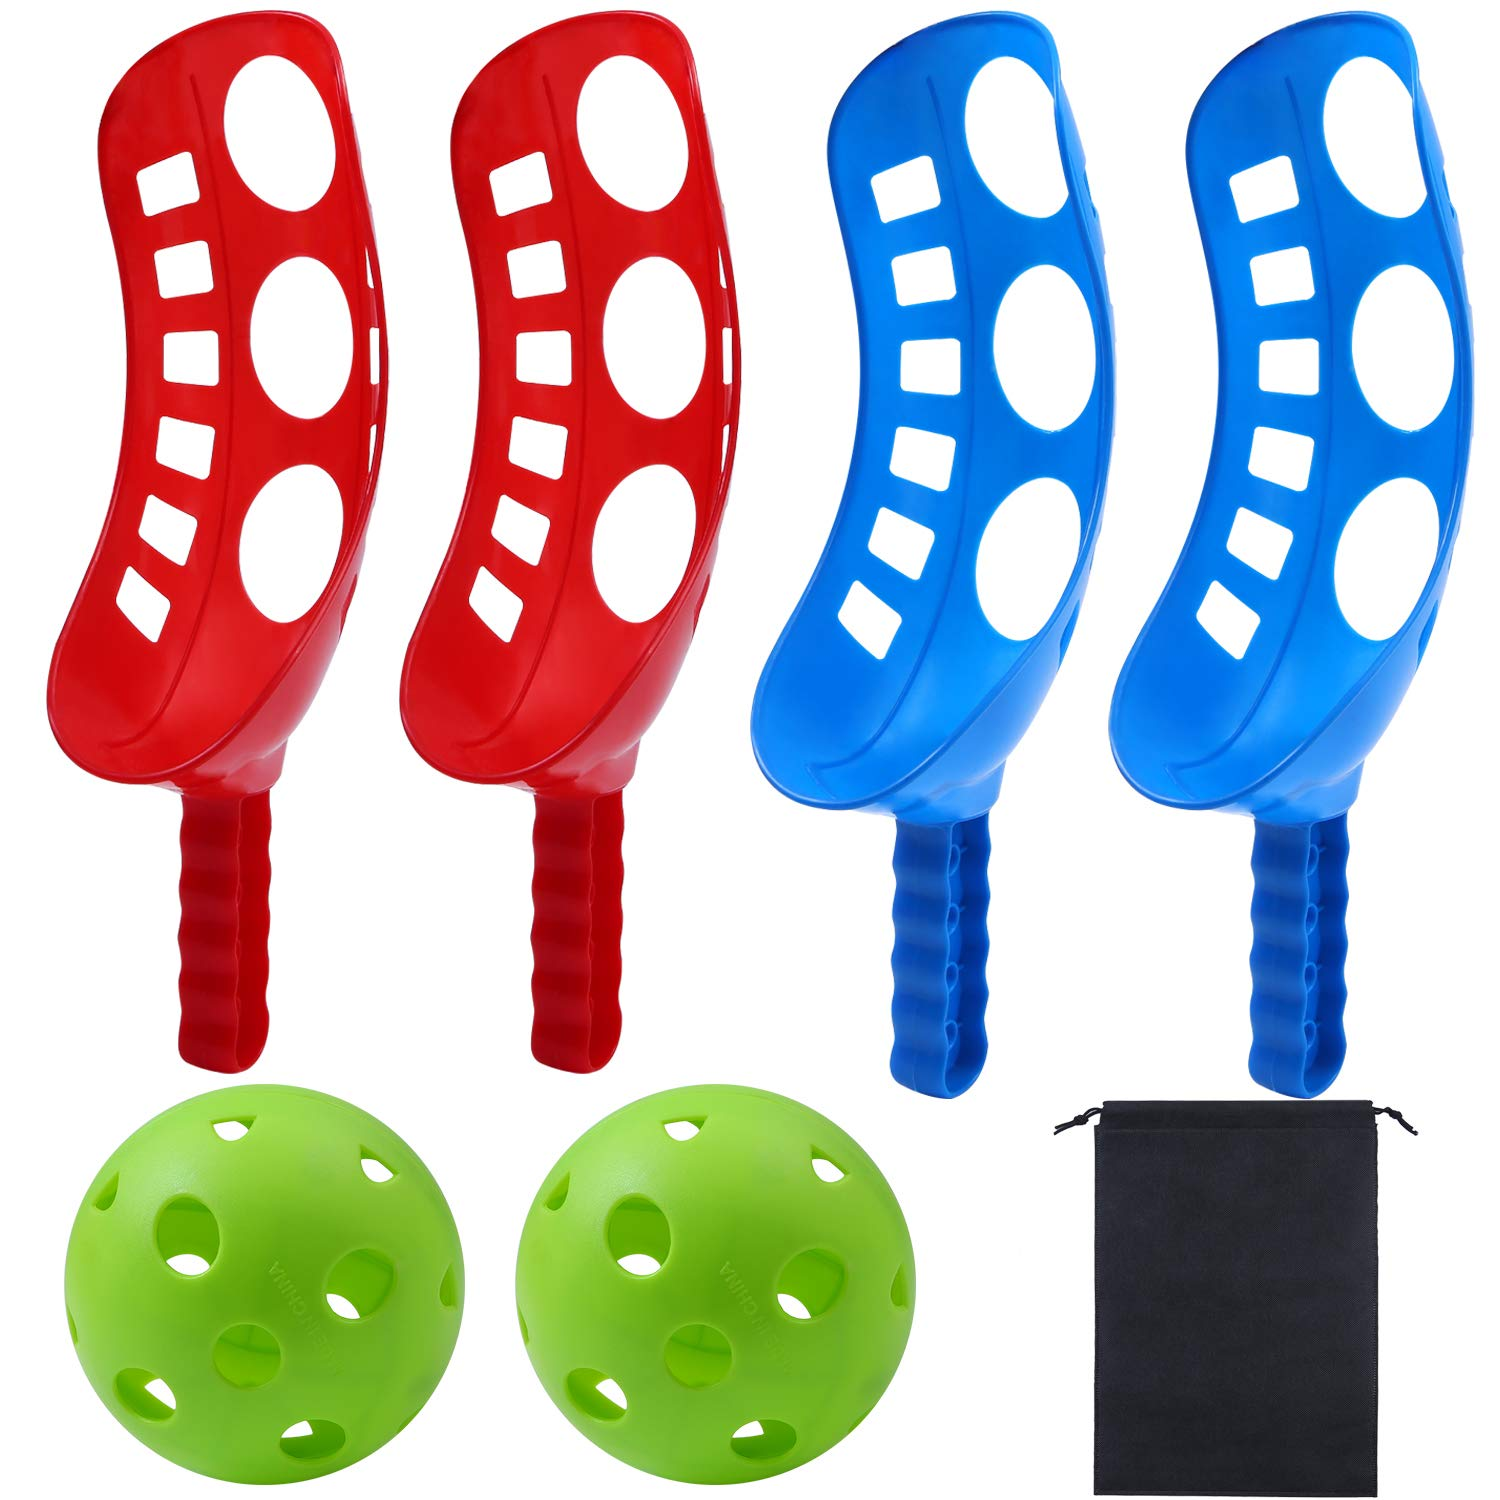 Cooraby Scoop Ball Game Scoop and Ball Toss Set Toss Catch Game Toy Lacrosse Racket Game for Kids and Adults with Storage Bag, 4 Scoop and 2 Balls